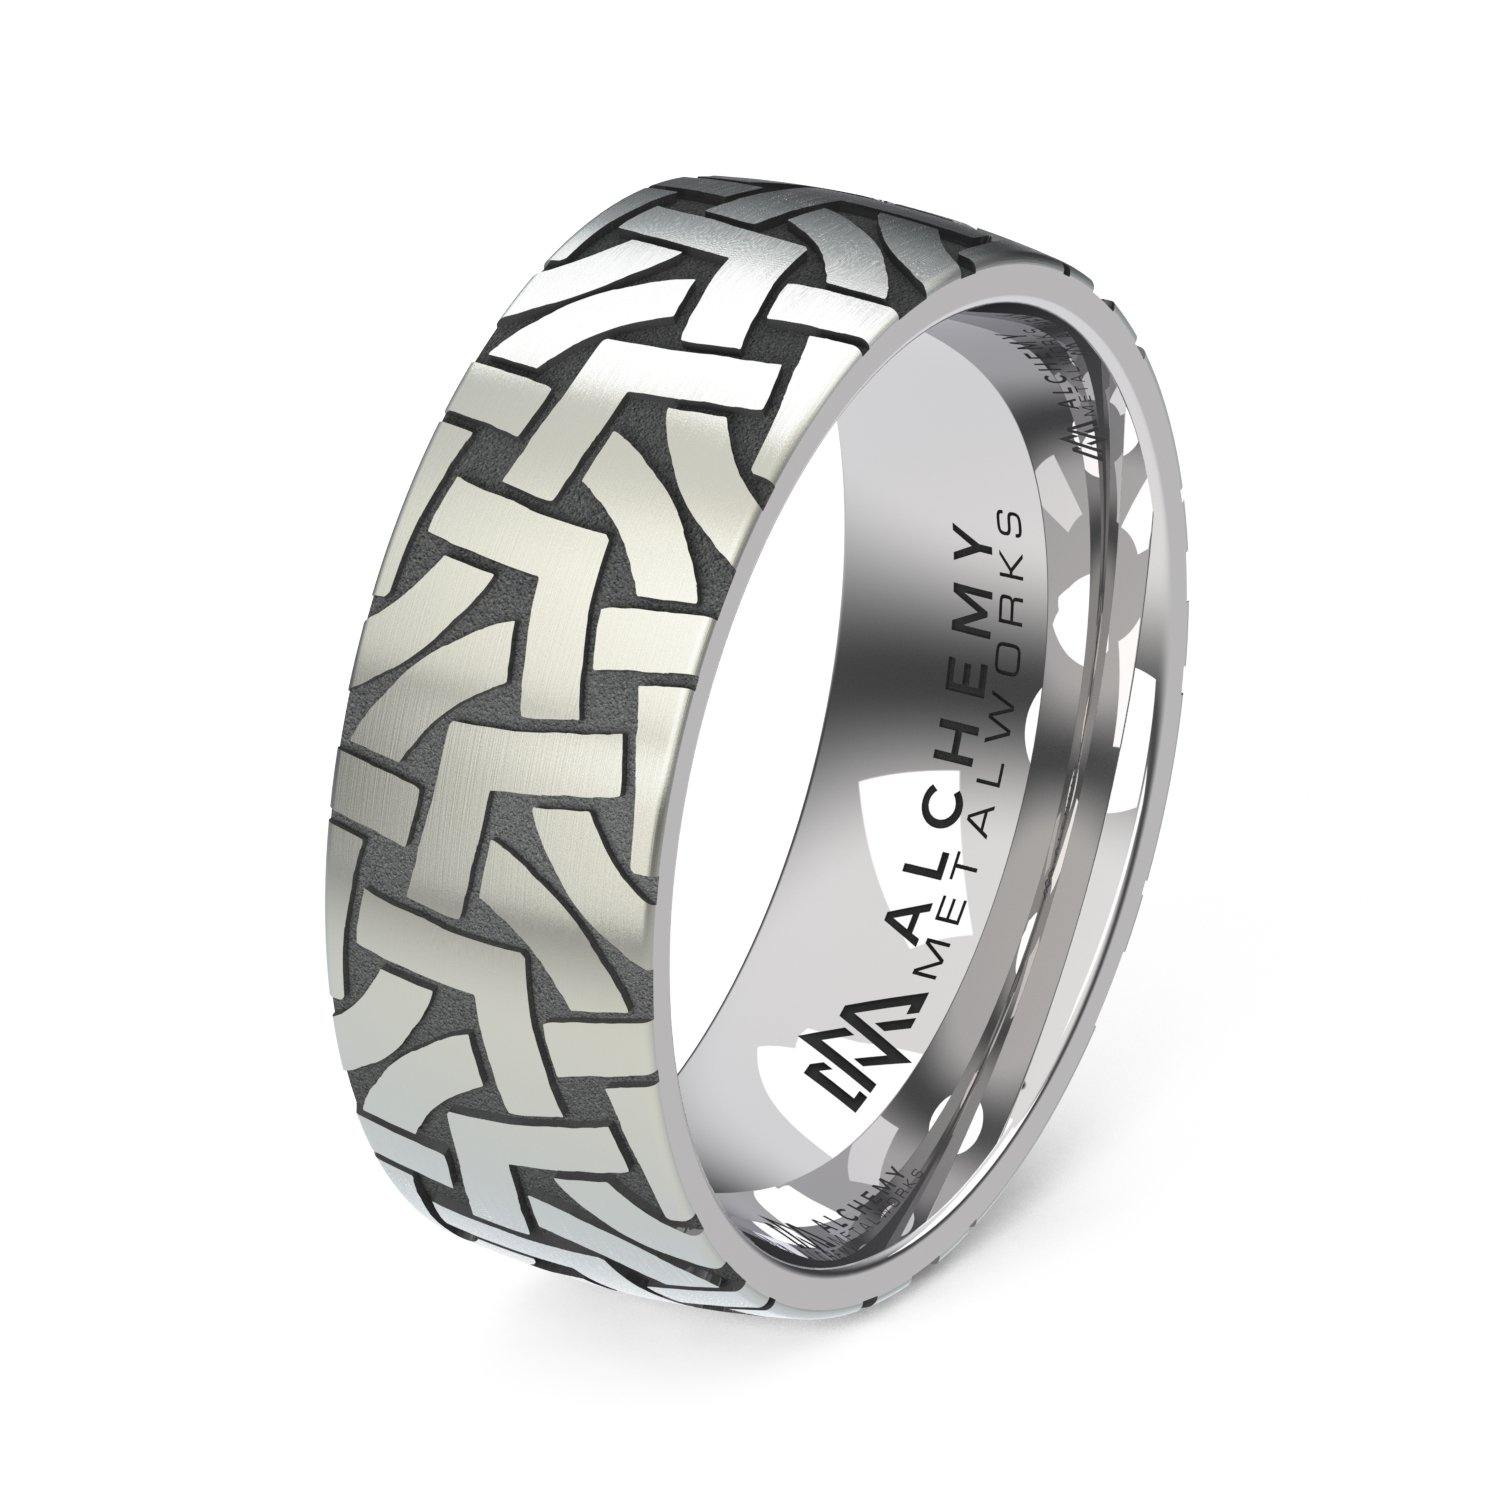 Laser Engraved Titanium Ring - Canted Arches